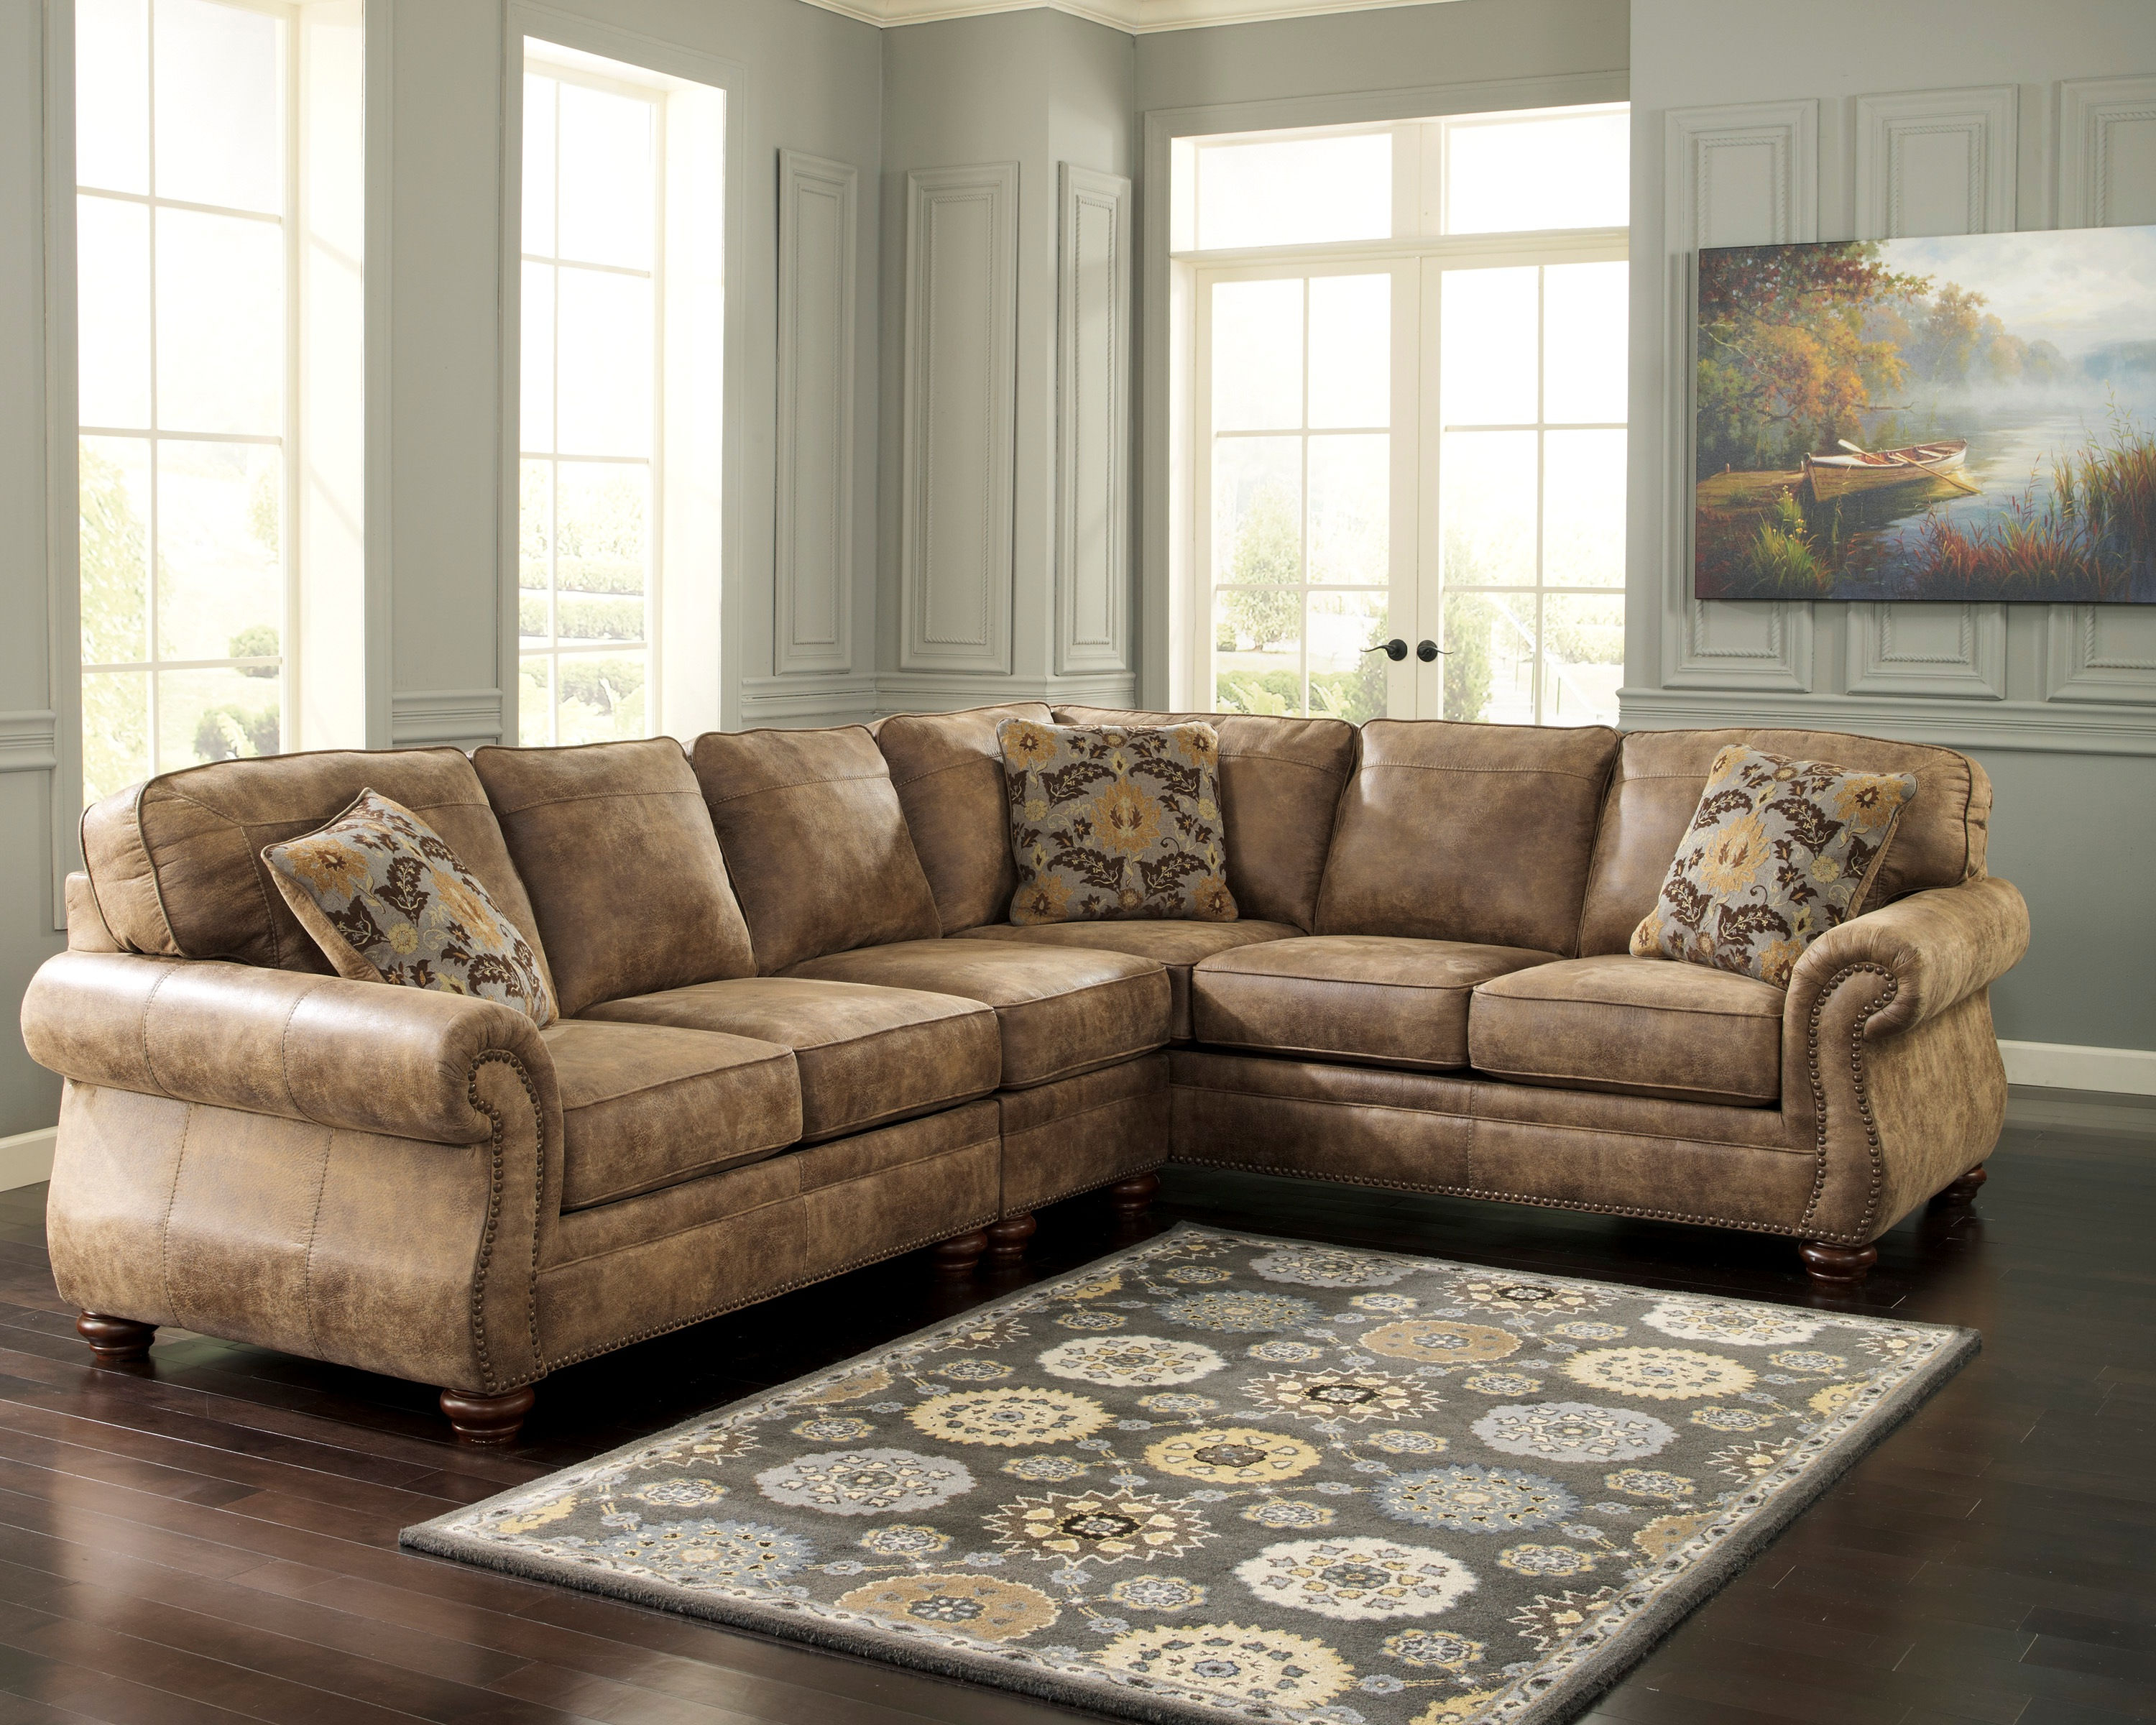 Turdur 2 Piece Sectionals With Laf Loveseat With Regard To 2019 Laf Sofa Raf Loveseat (View 14 of 20)